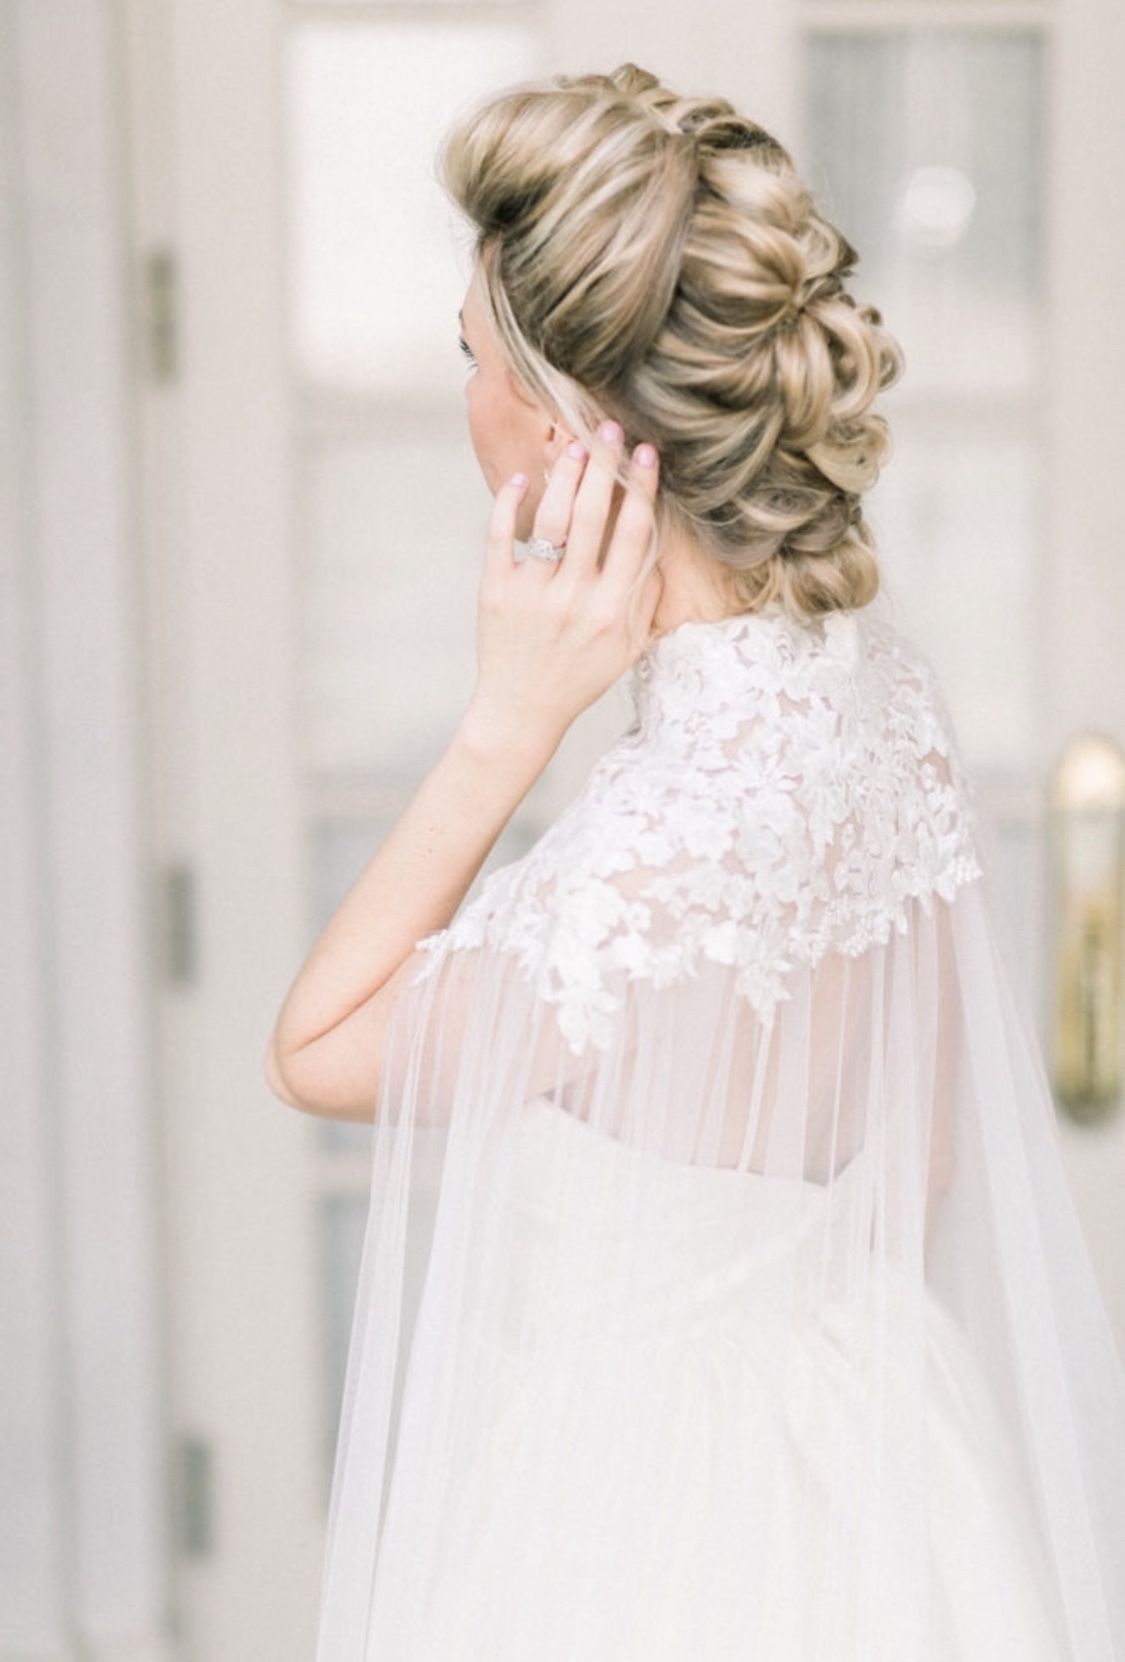 pin by g&a weddings on wedding hair and makeup in 2019